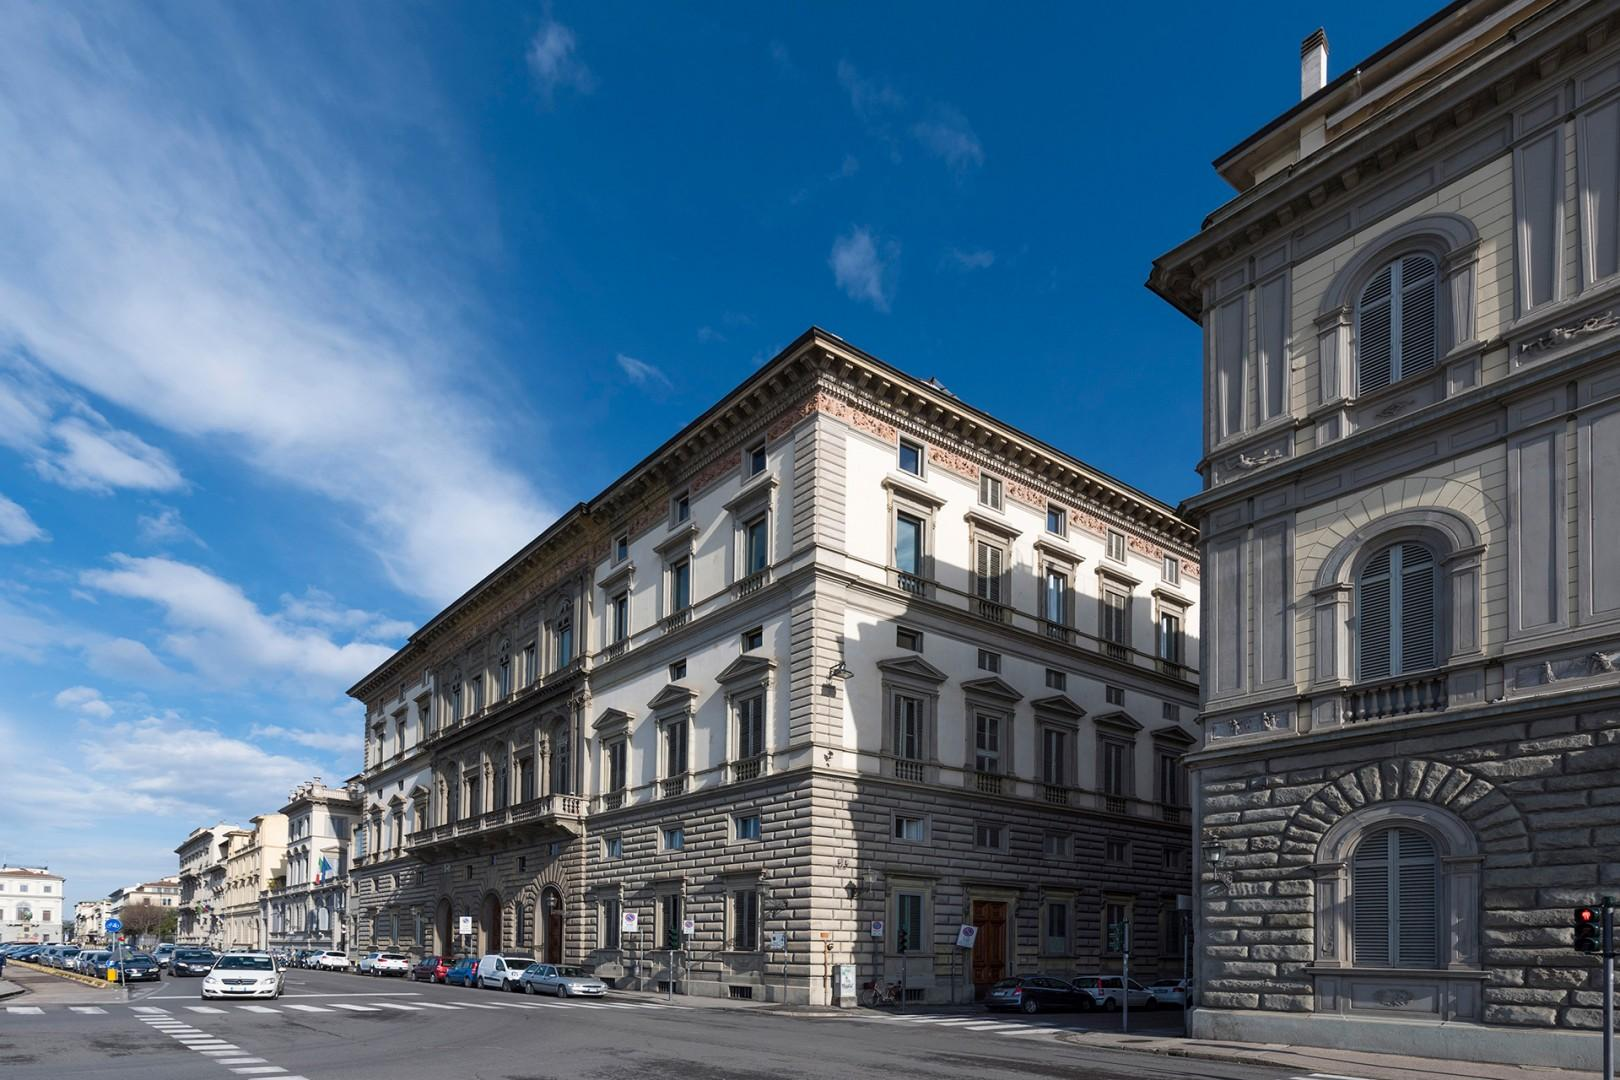 Elegant 19th century palazzo where the apartment is located.